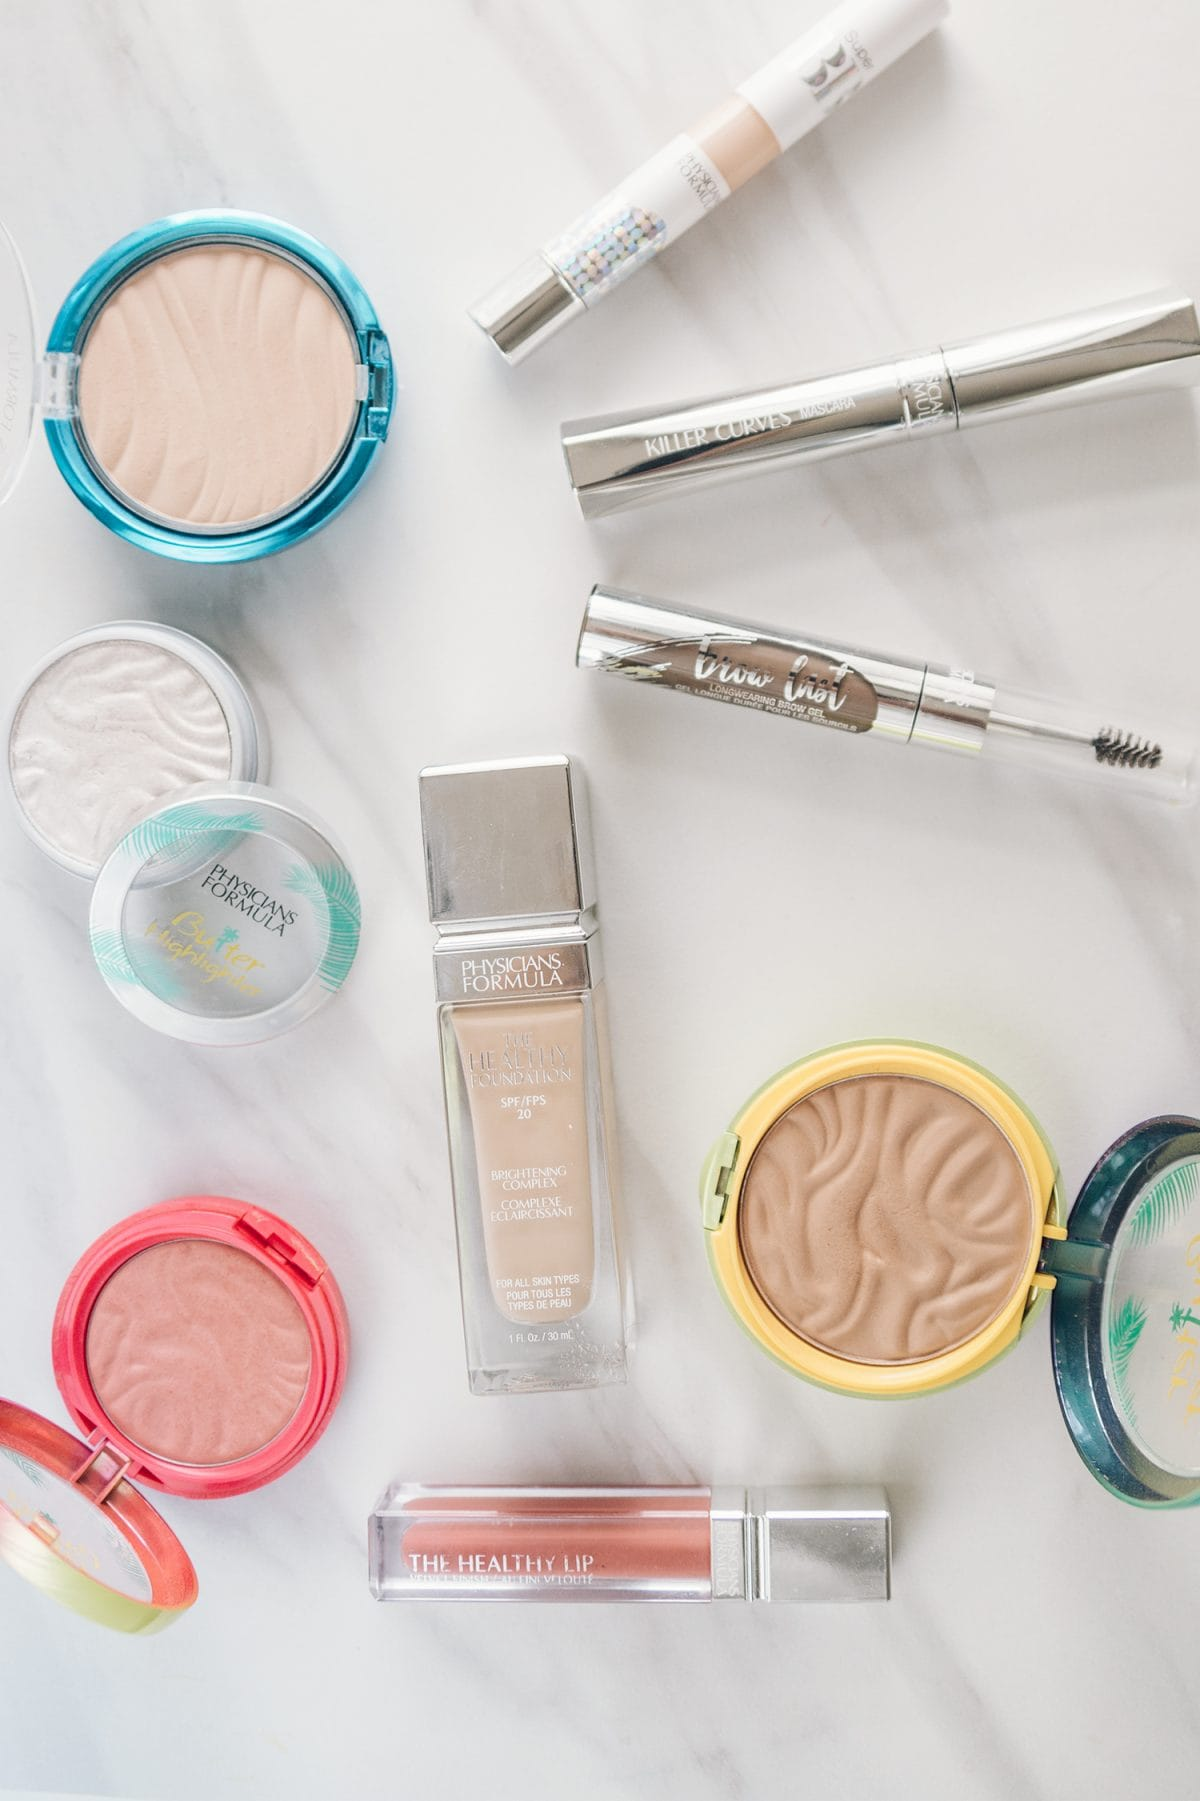 Houston beauty blogger Meg O. on the Go shares her favorite Physicians Formula products